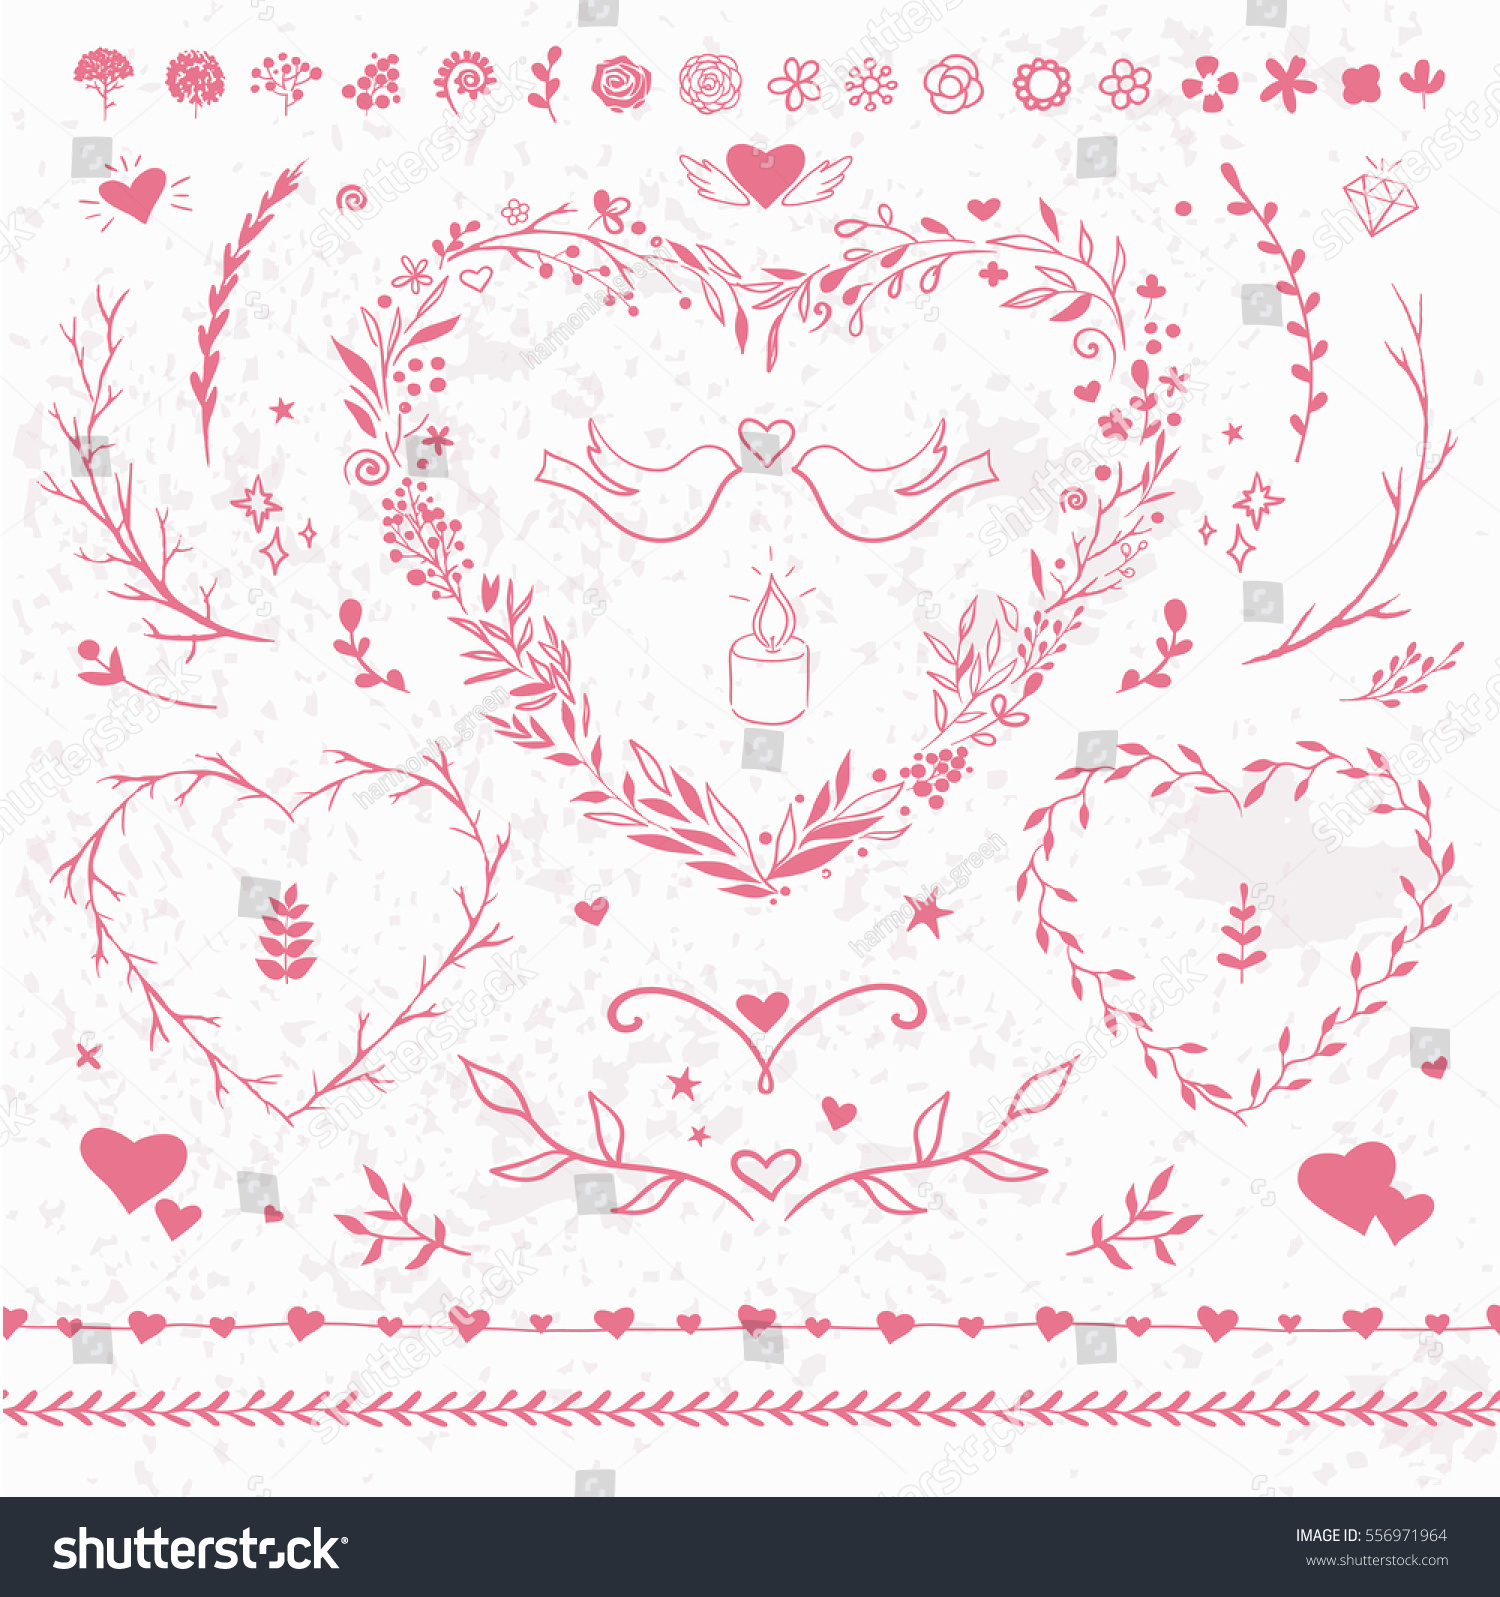 Romantic Vector Floral Set Valentines Day Stock Vector (2018 ...